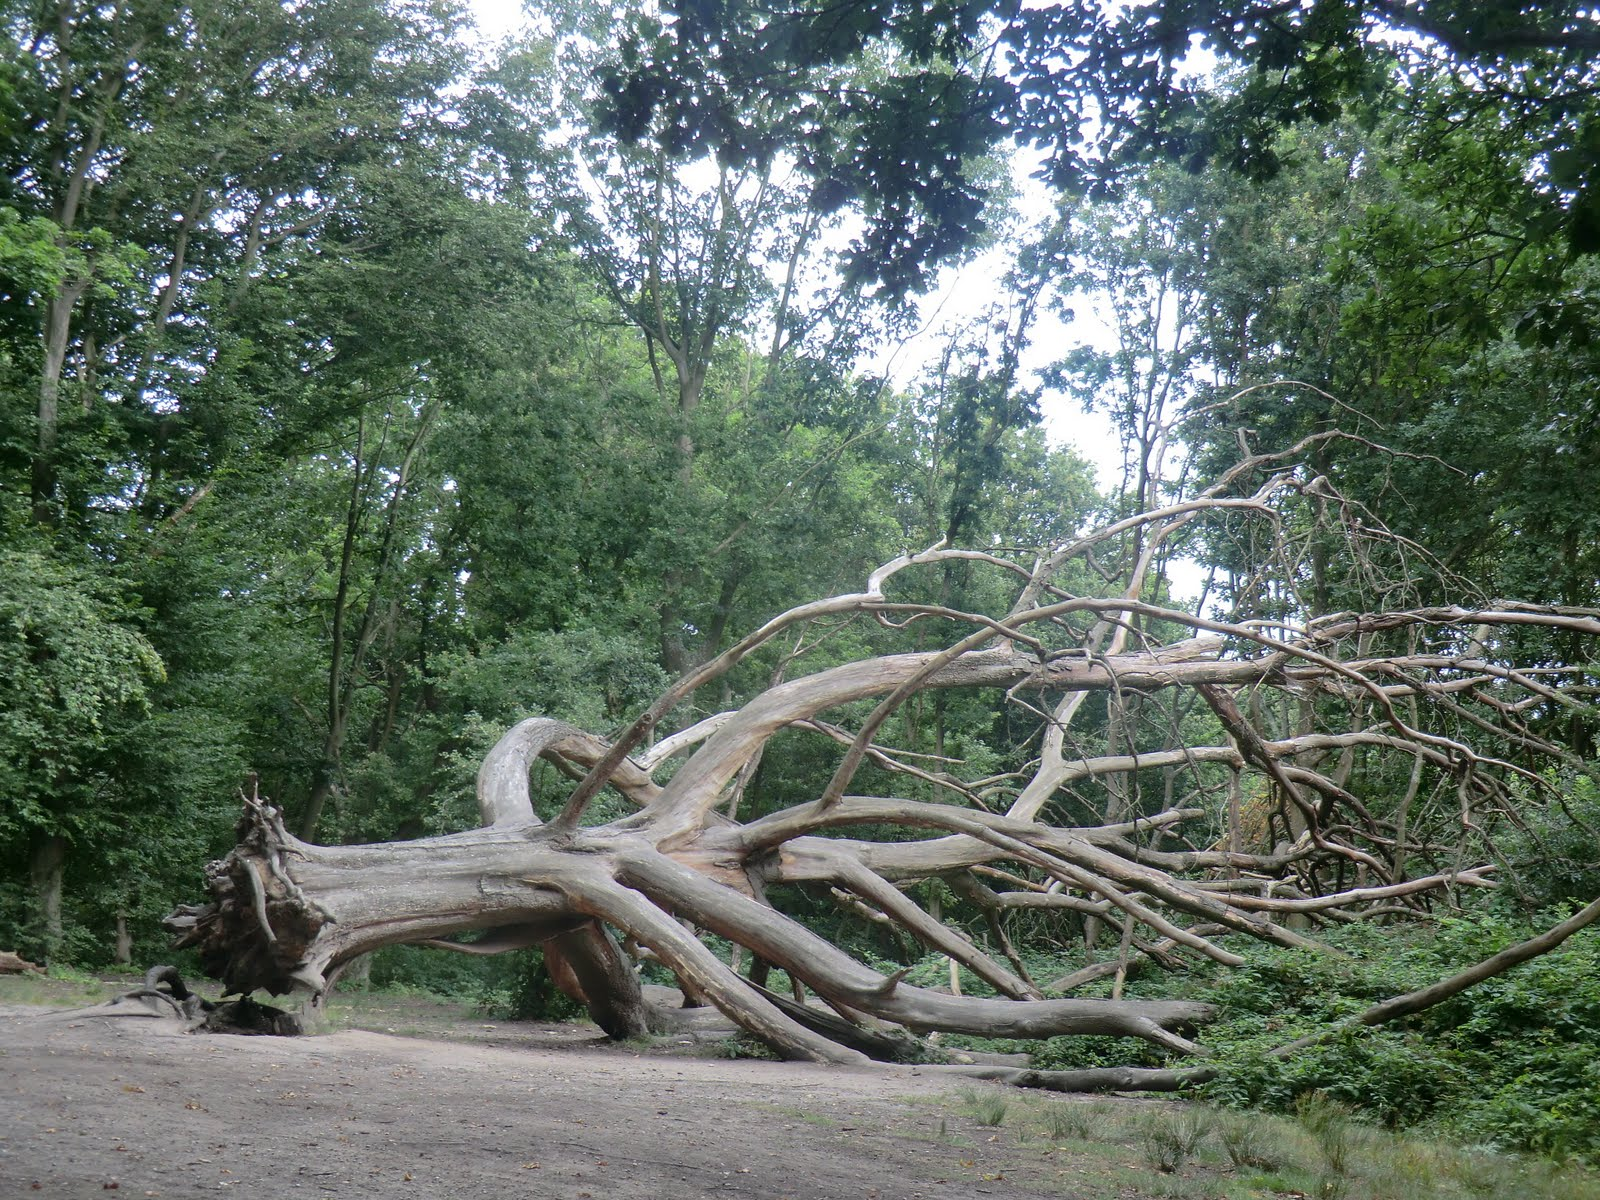 CIMG9694 A casualty of the storm, Hampstead Heath